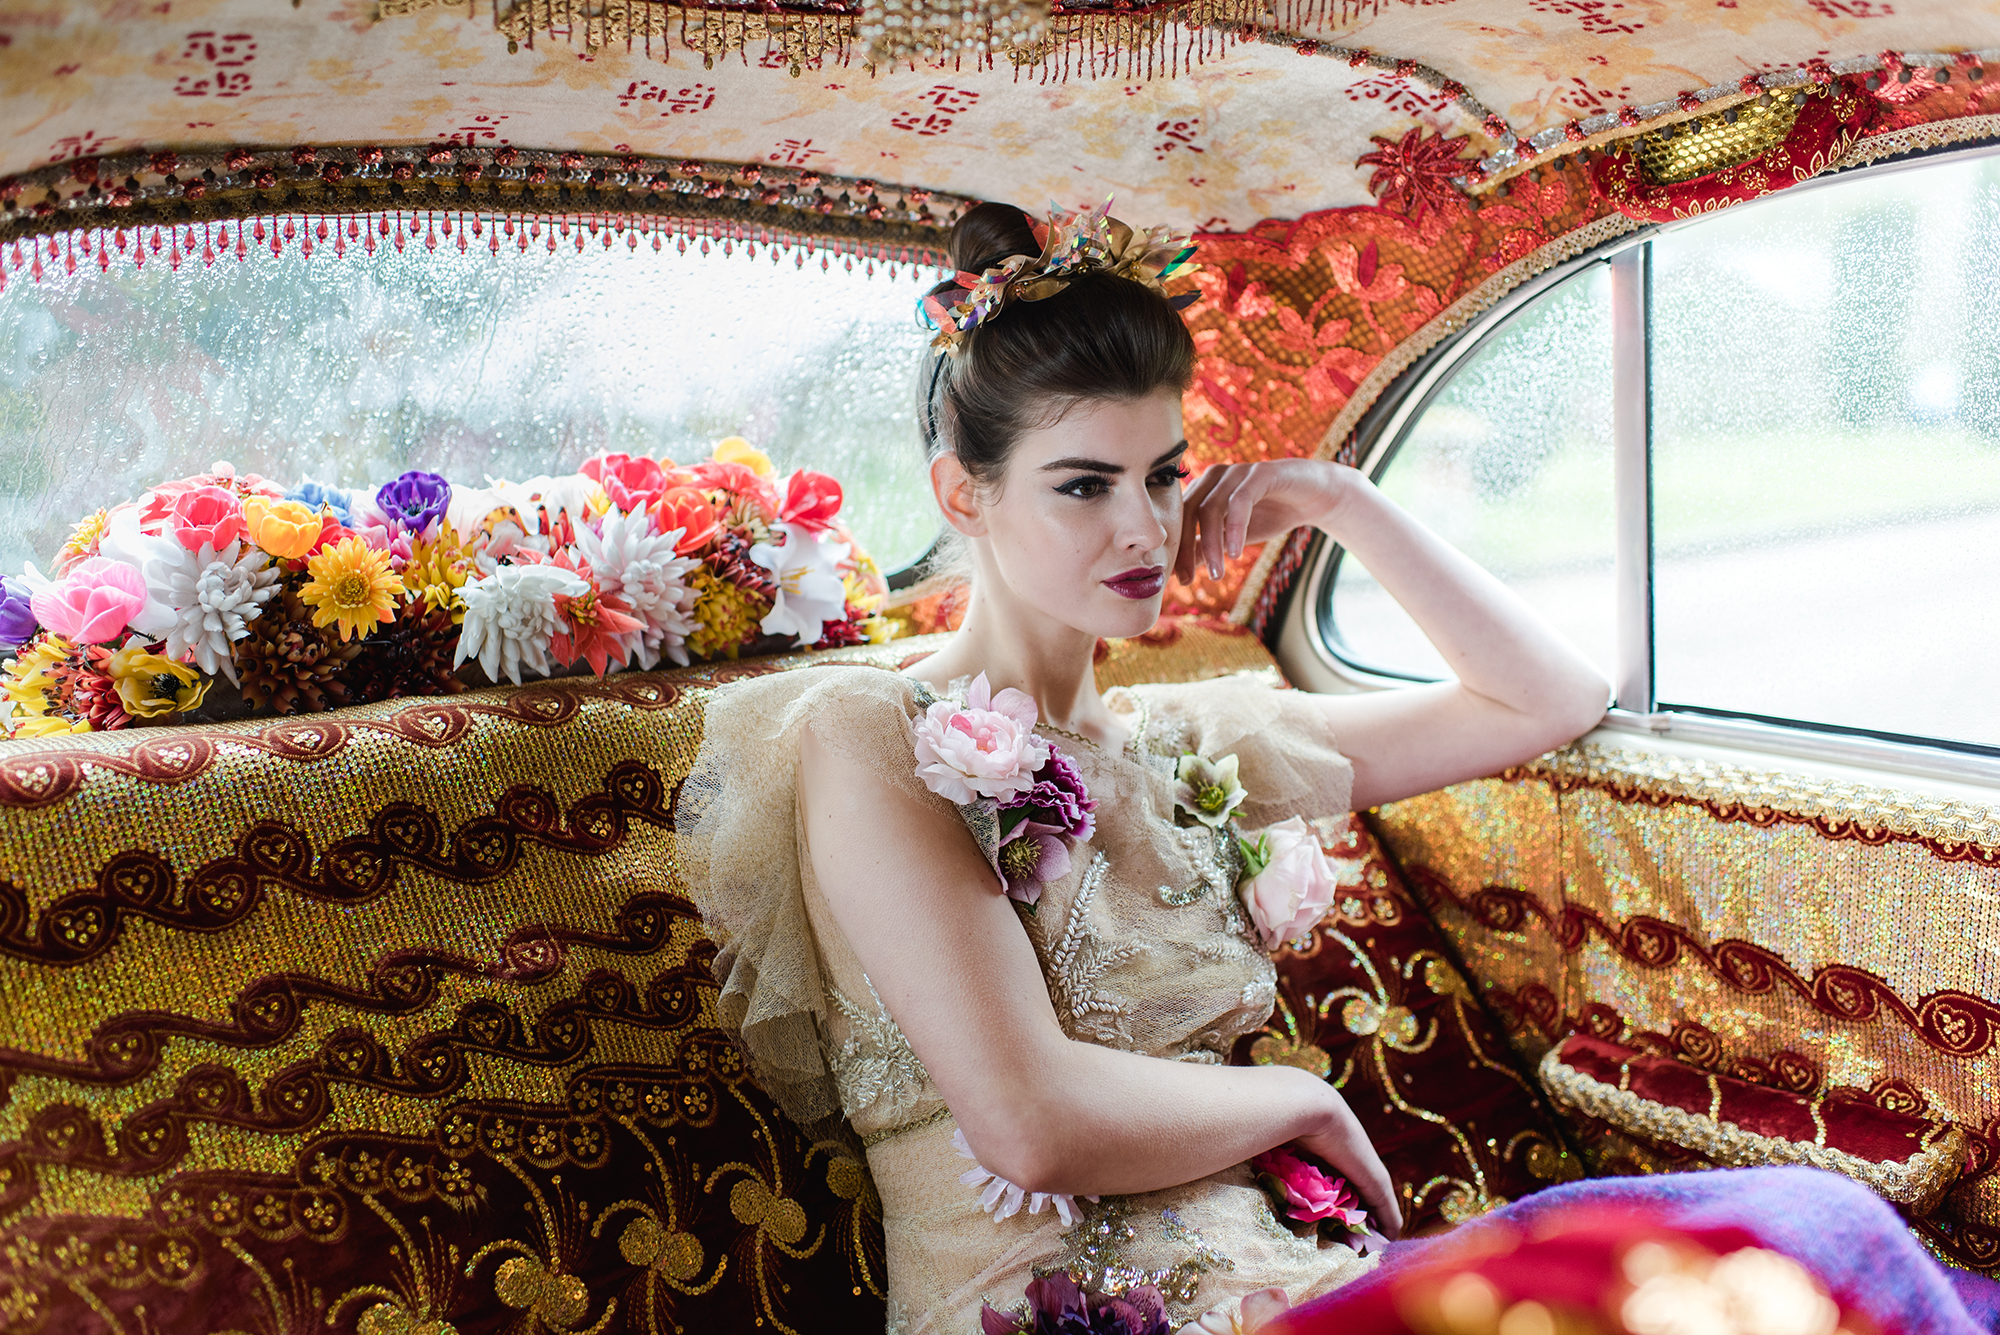 Car from  Kushi Cars , Model -Maria from  Alpha Agency ,Photography by Alexa Loy Photography